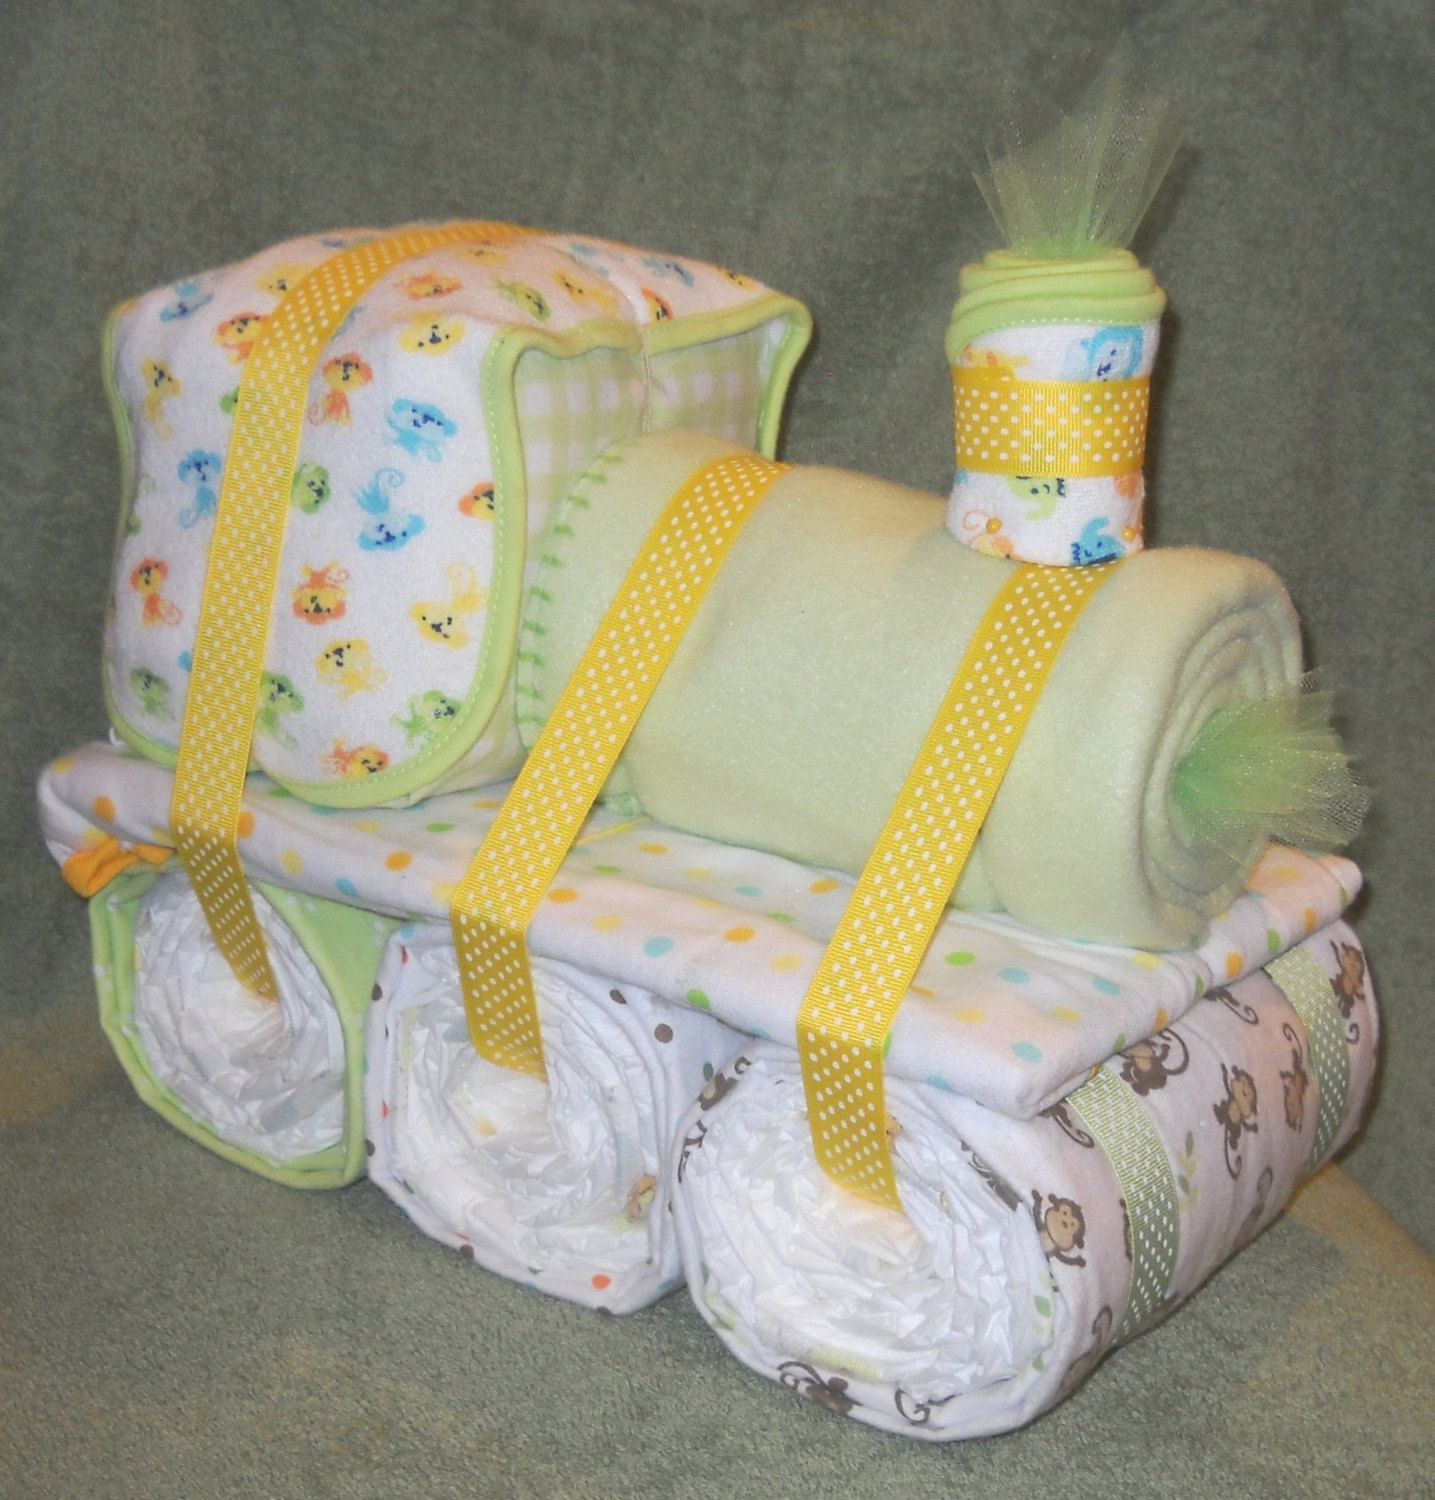 Best ideas about Diaper Ideas For Baby Shower Gift . Save or Pin Choo Choo Train Diaper Cake for Baby Shower Centerpiece or Now.